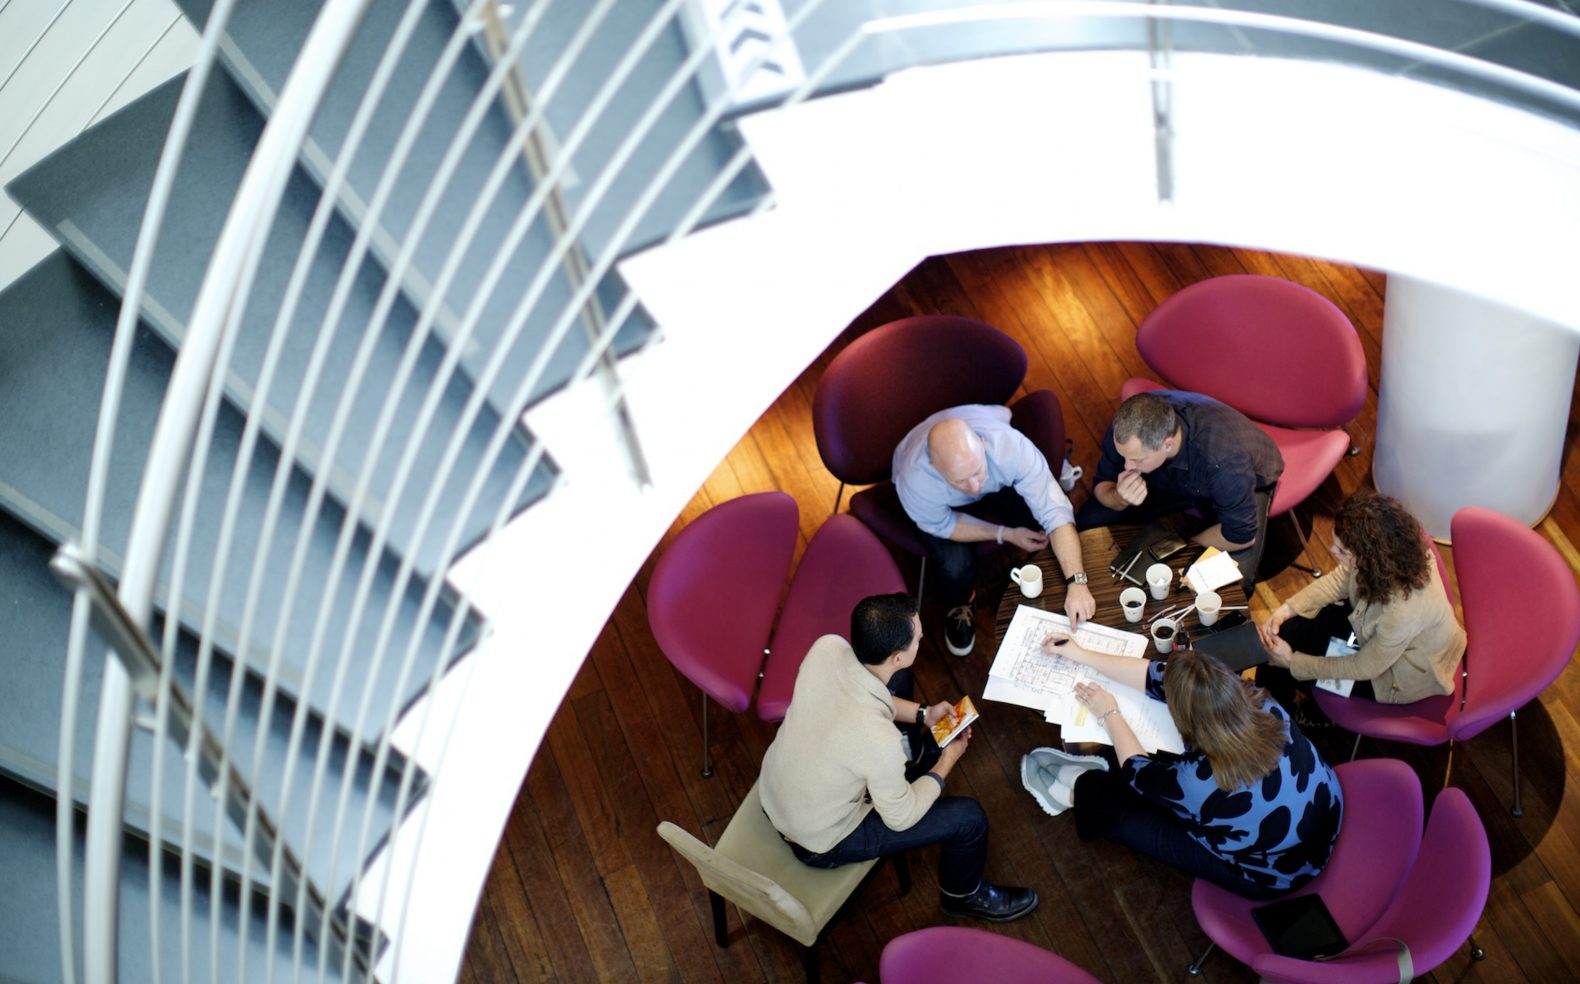 Overhead view from a curved staircase of five business professionals sitting around a small table with coffee and documents.